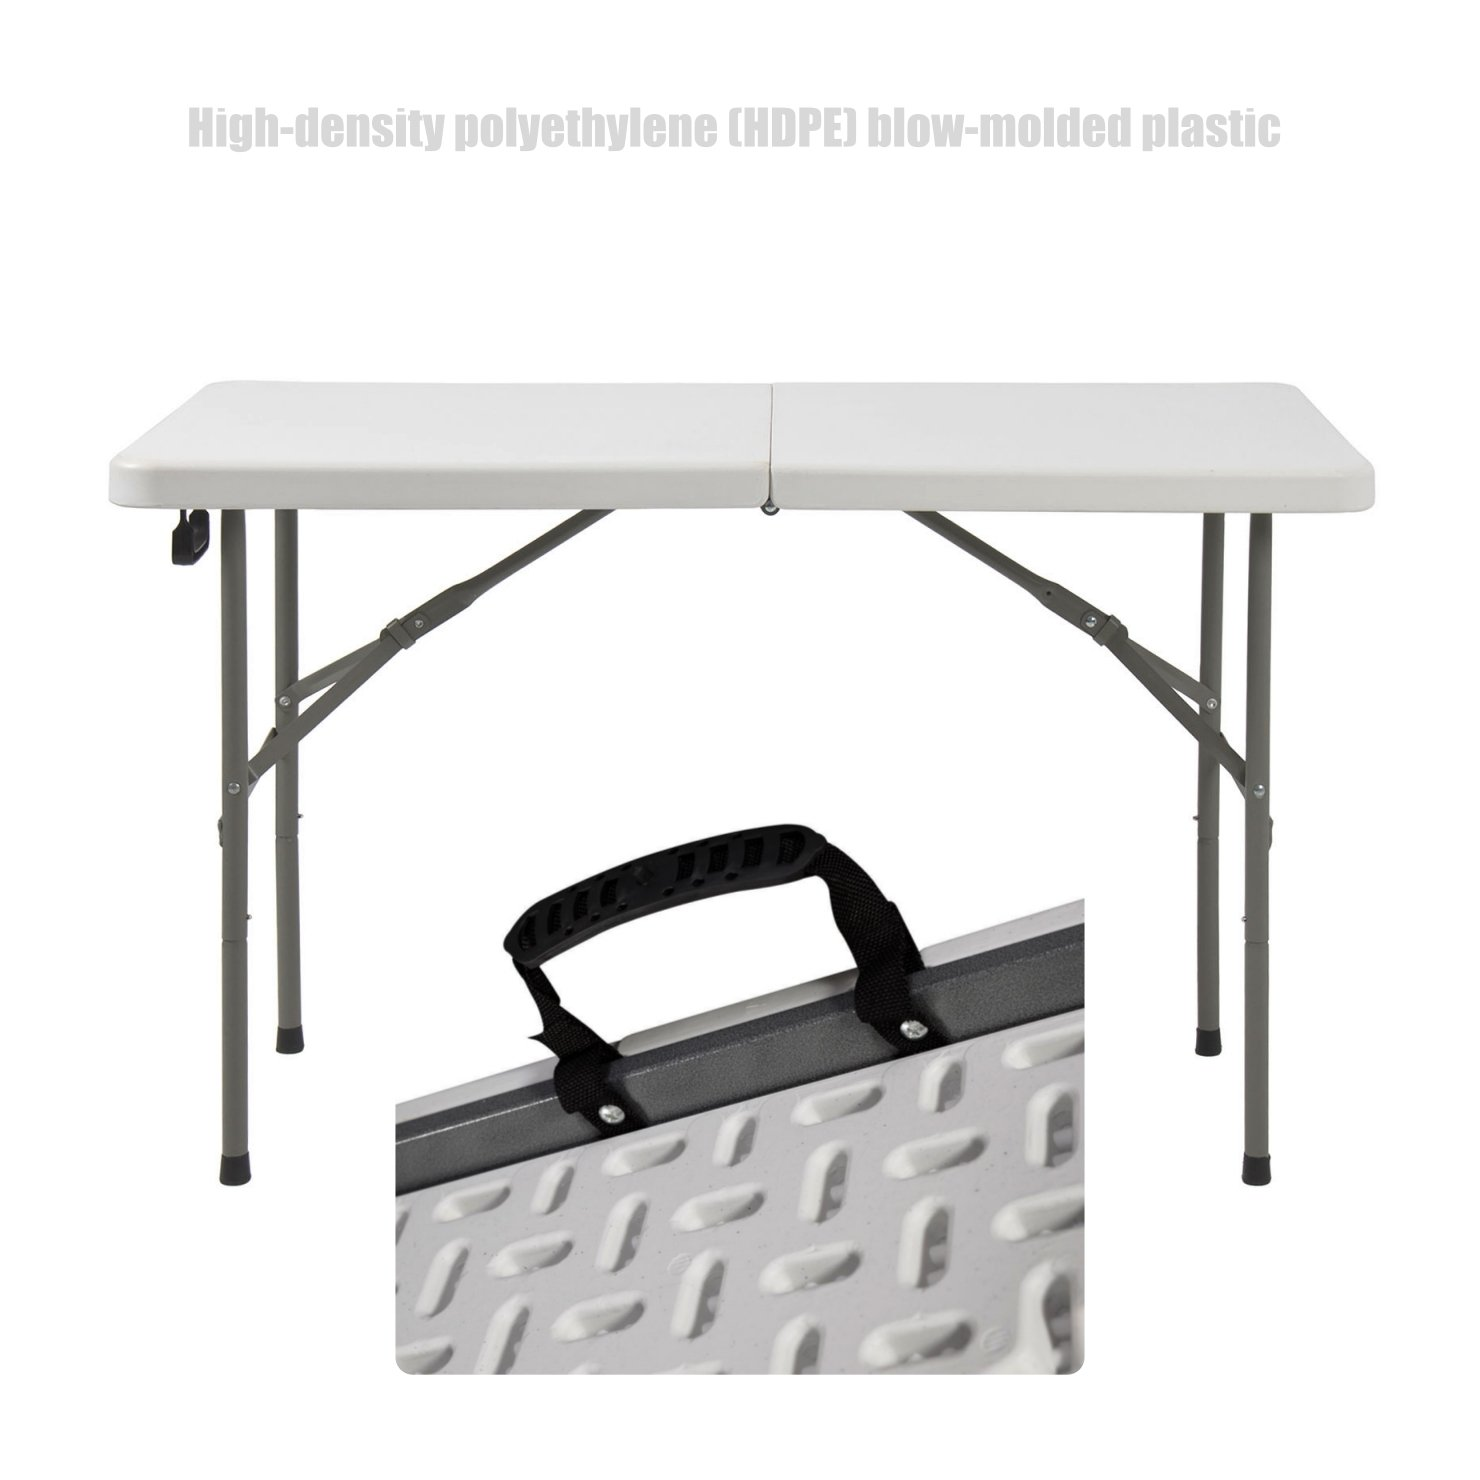 Commercial Construction Light-weight Portable High Density Plastic Folding Table Indoor-Outdoor Laptop Desk School Office Picnic Camp Party Dining Table - 4ft # 1361